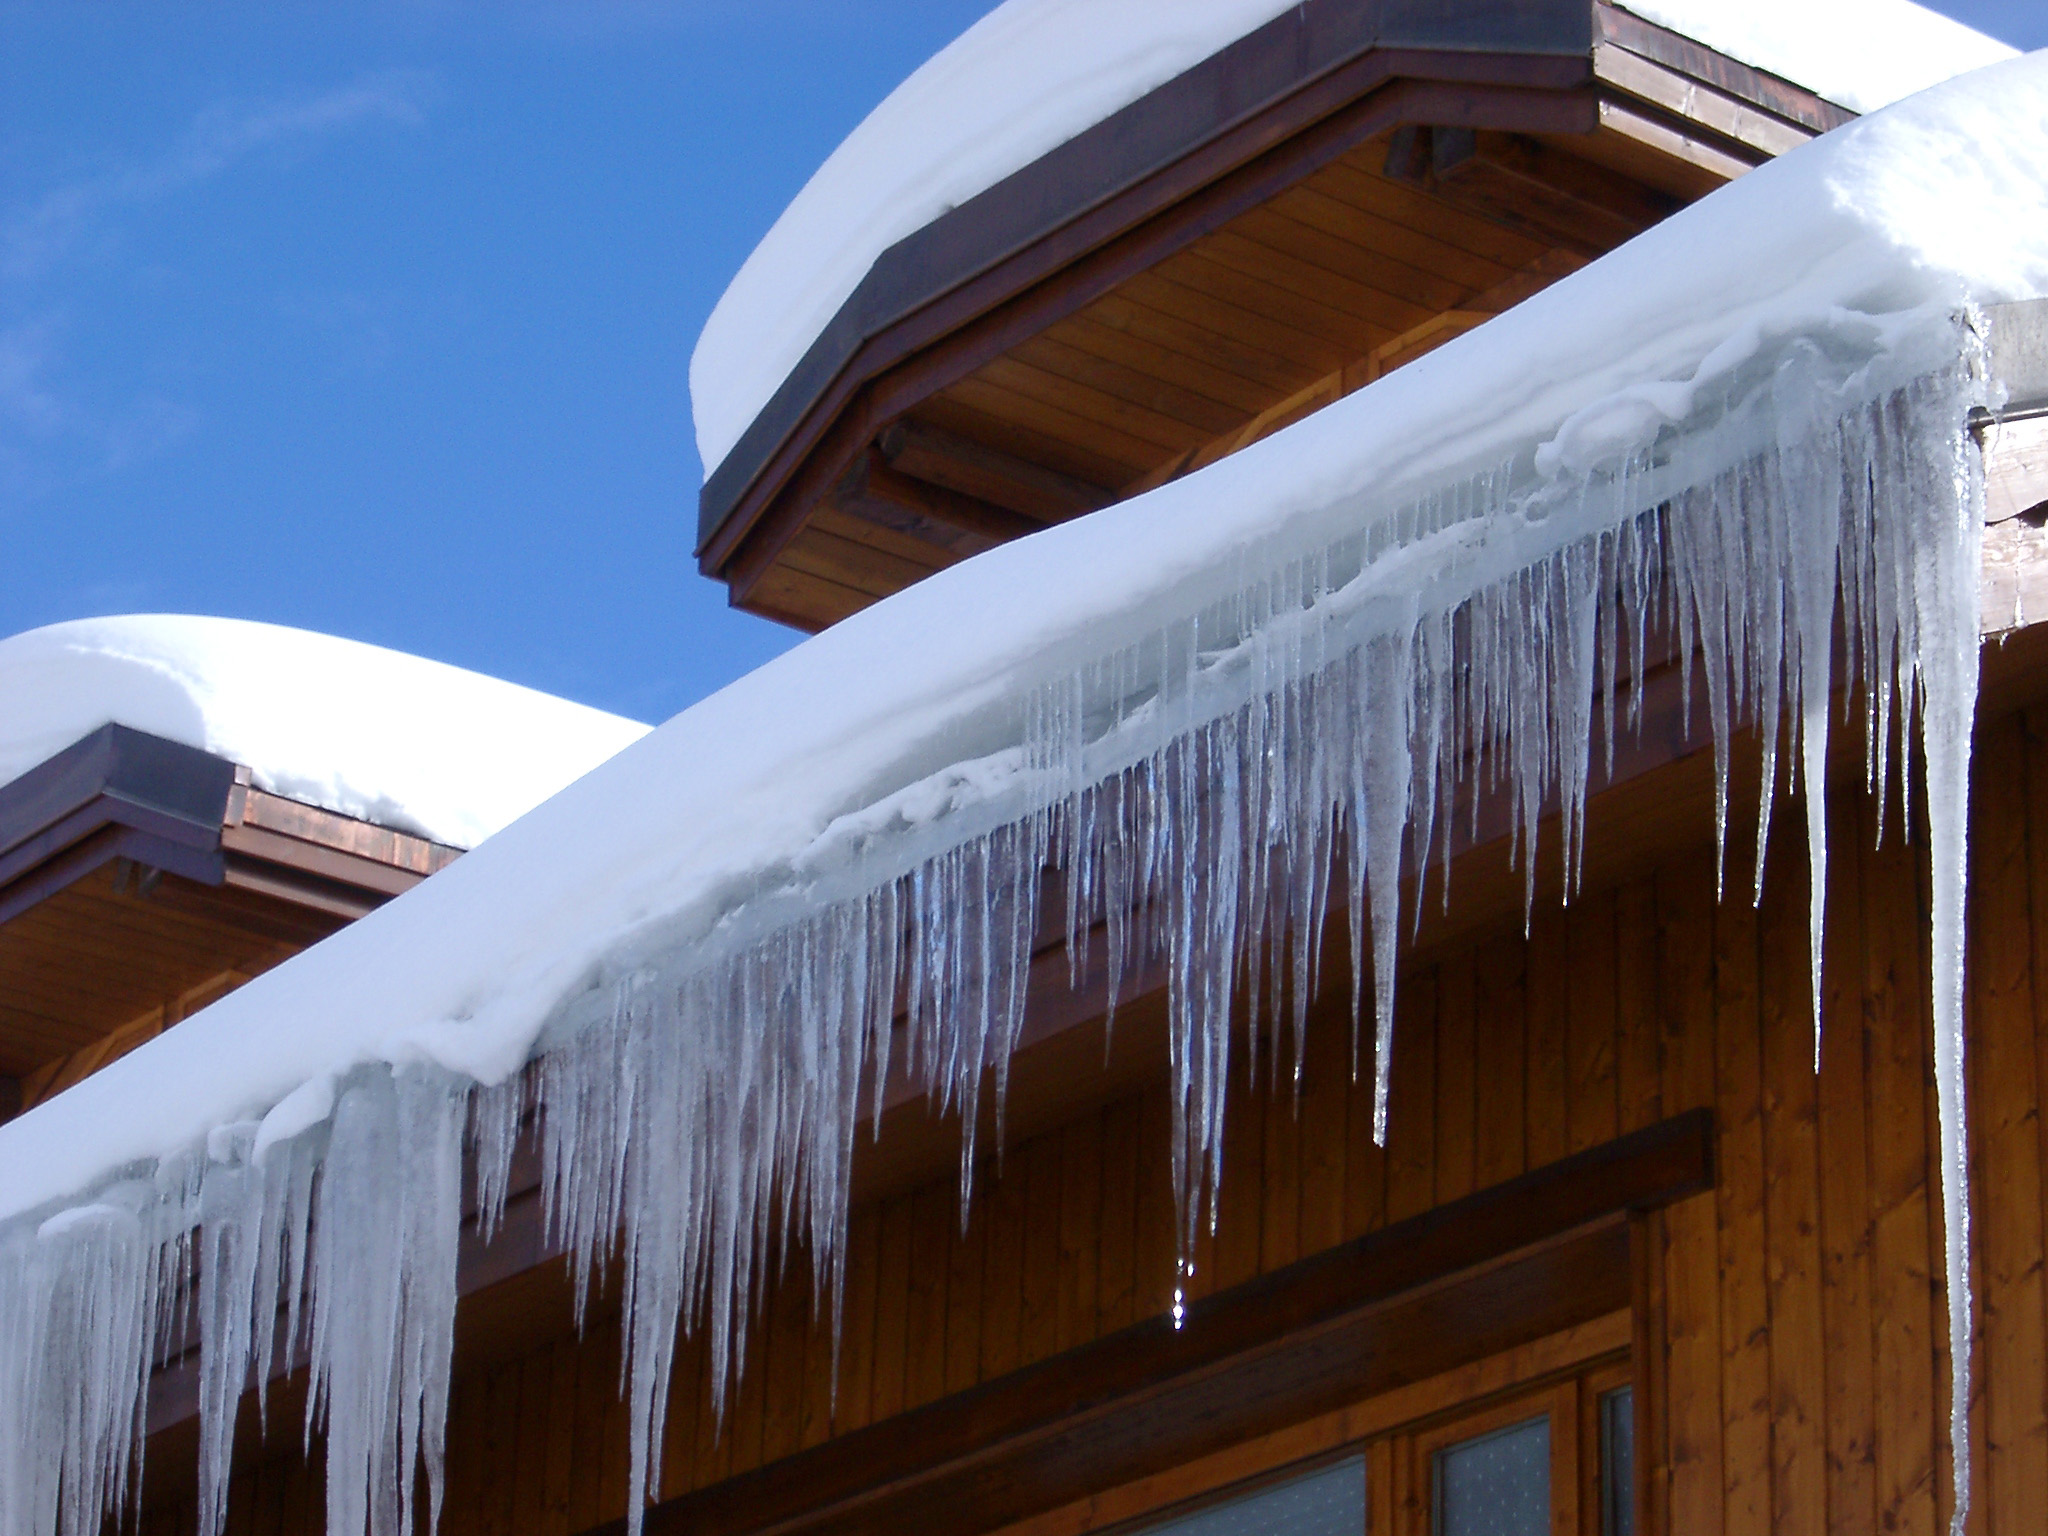 Icicles and a snow covered roof on a winter log holiday cabin against a clear blue sky in a vacation and travel concept